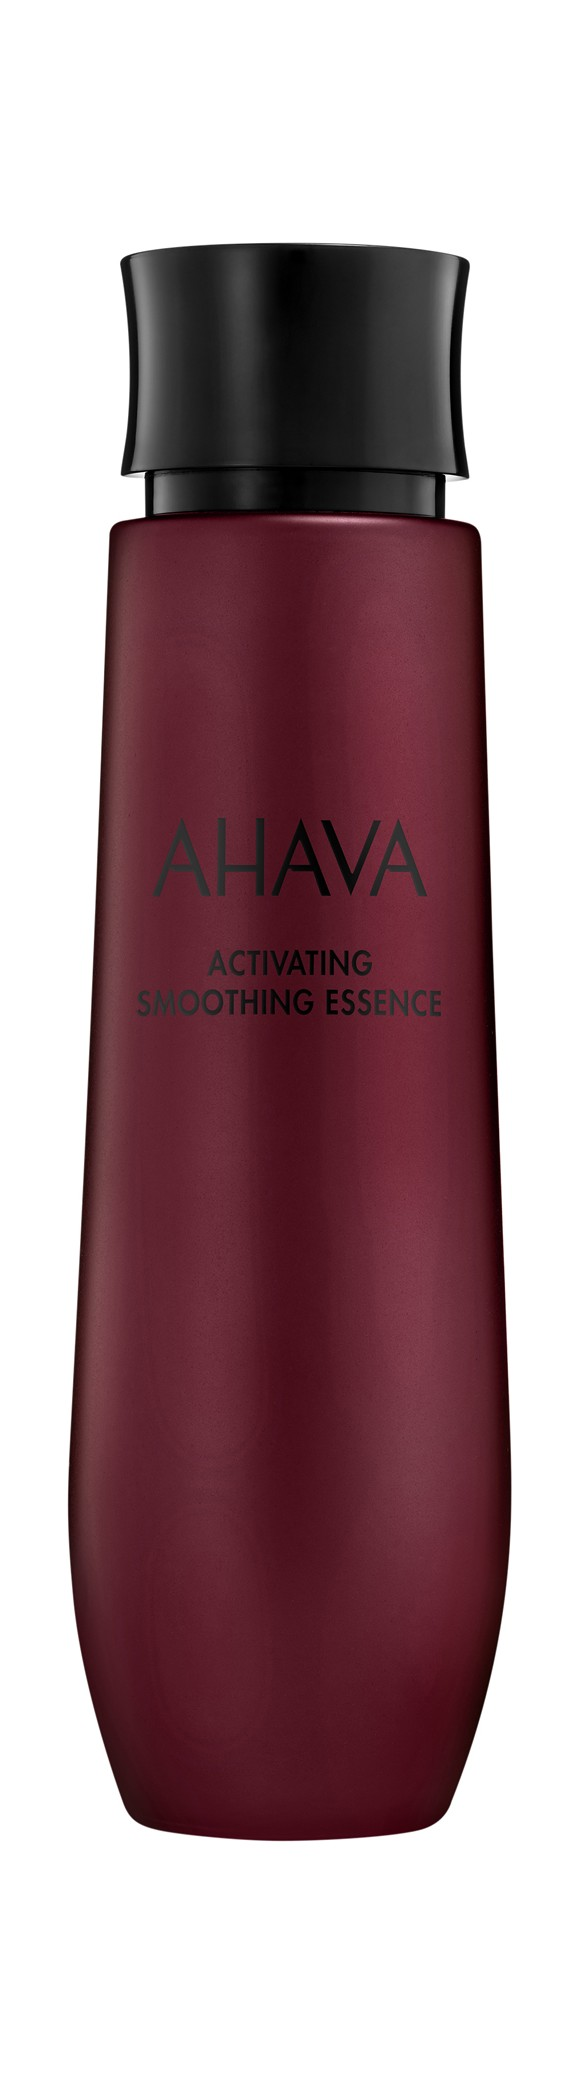 AHAVA - Apple of Sodom Activating Smoothing Lotion Essence 100 ml